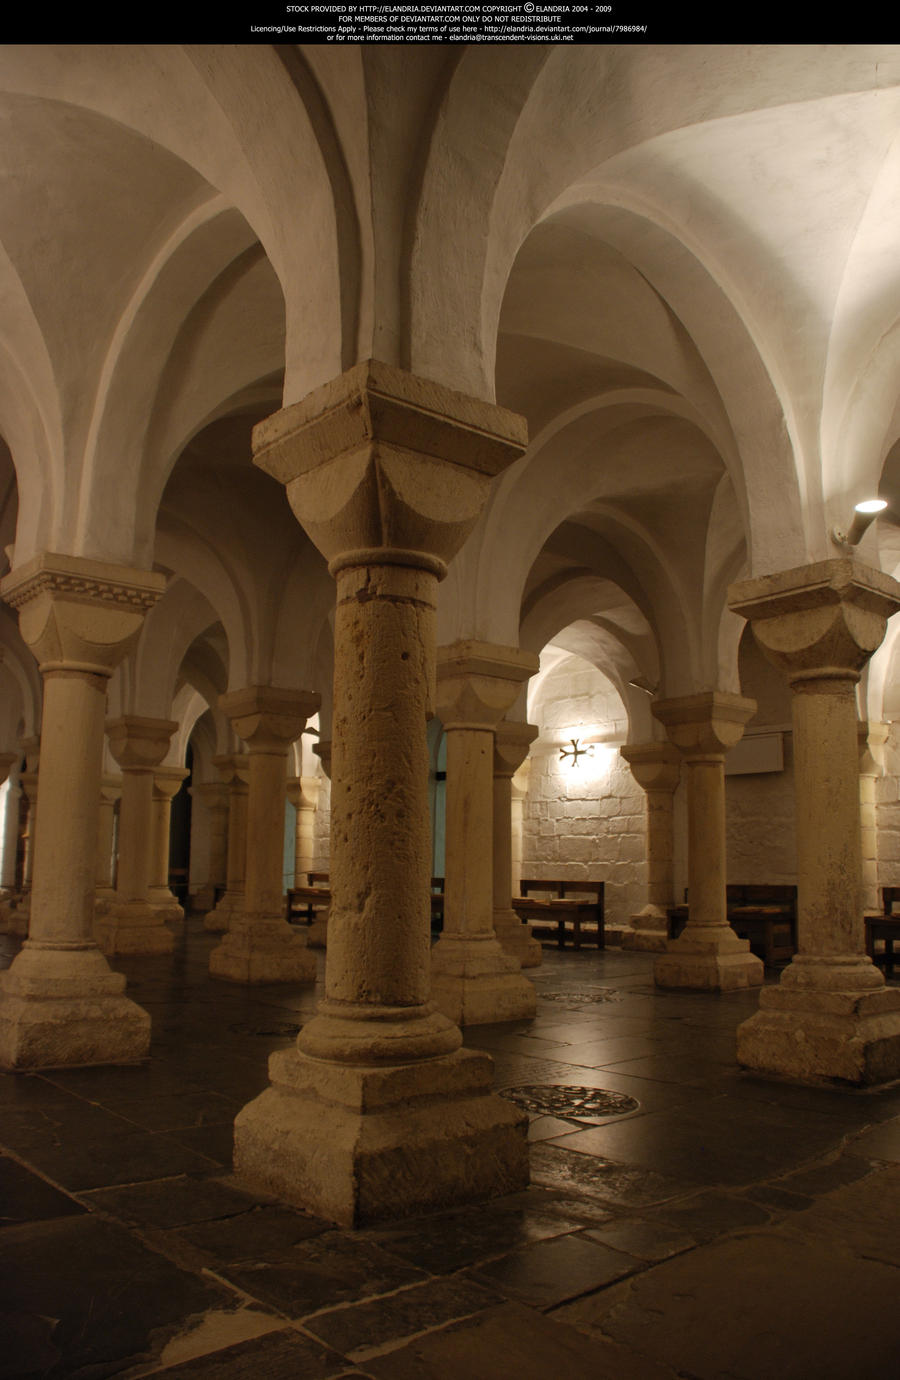 A Forest of Columns 2